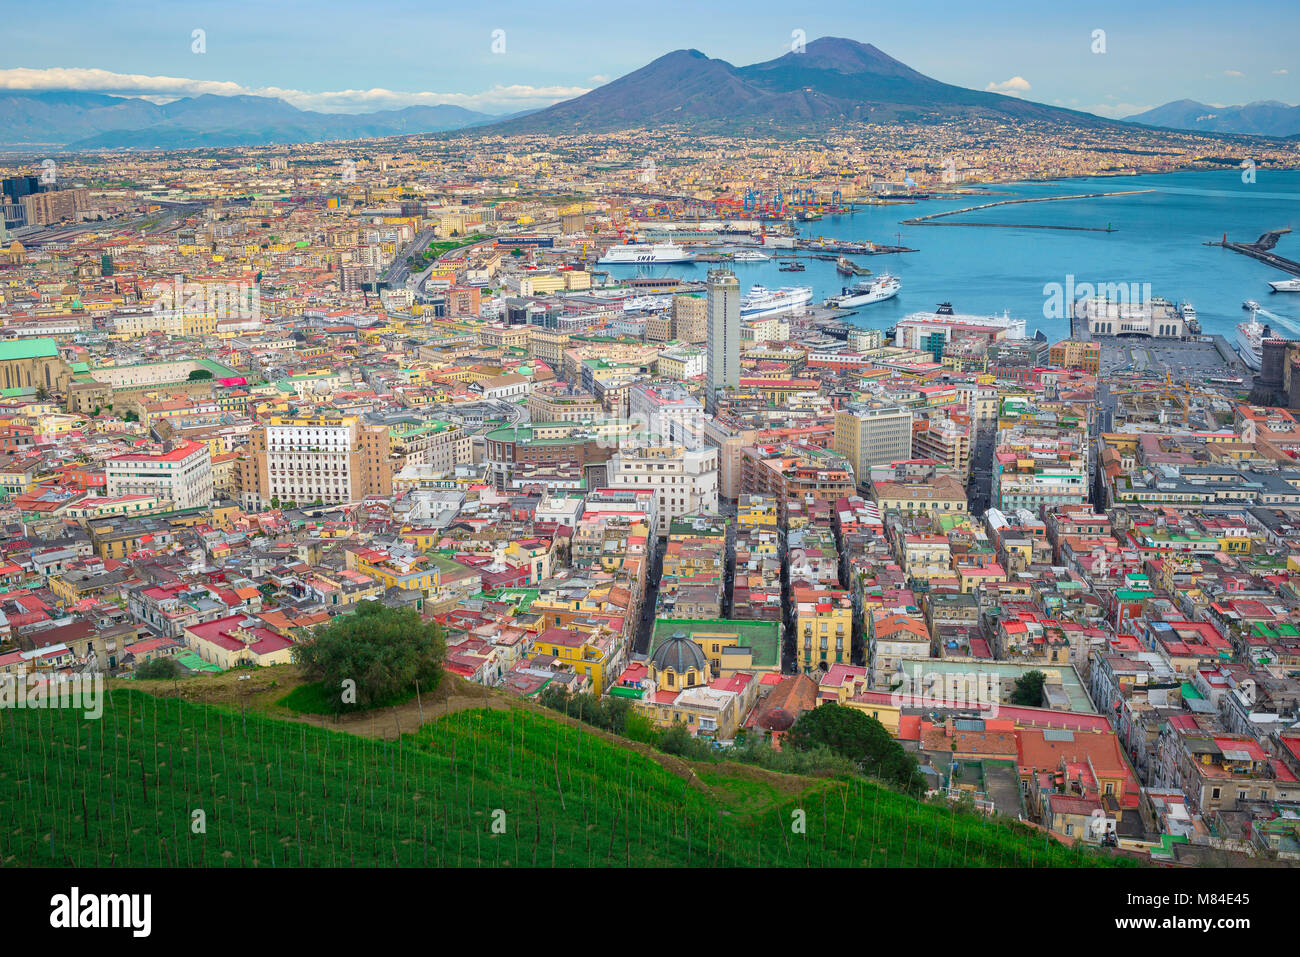 Naples bay, aerial view from the Vomero district of the city and port of Naples with the towering form of Mount - Stock Image